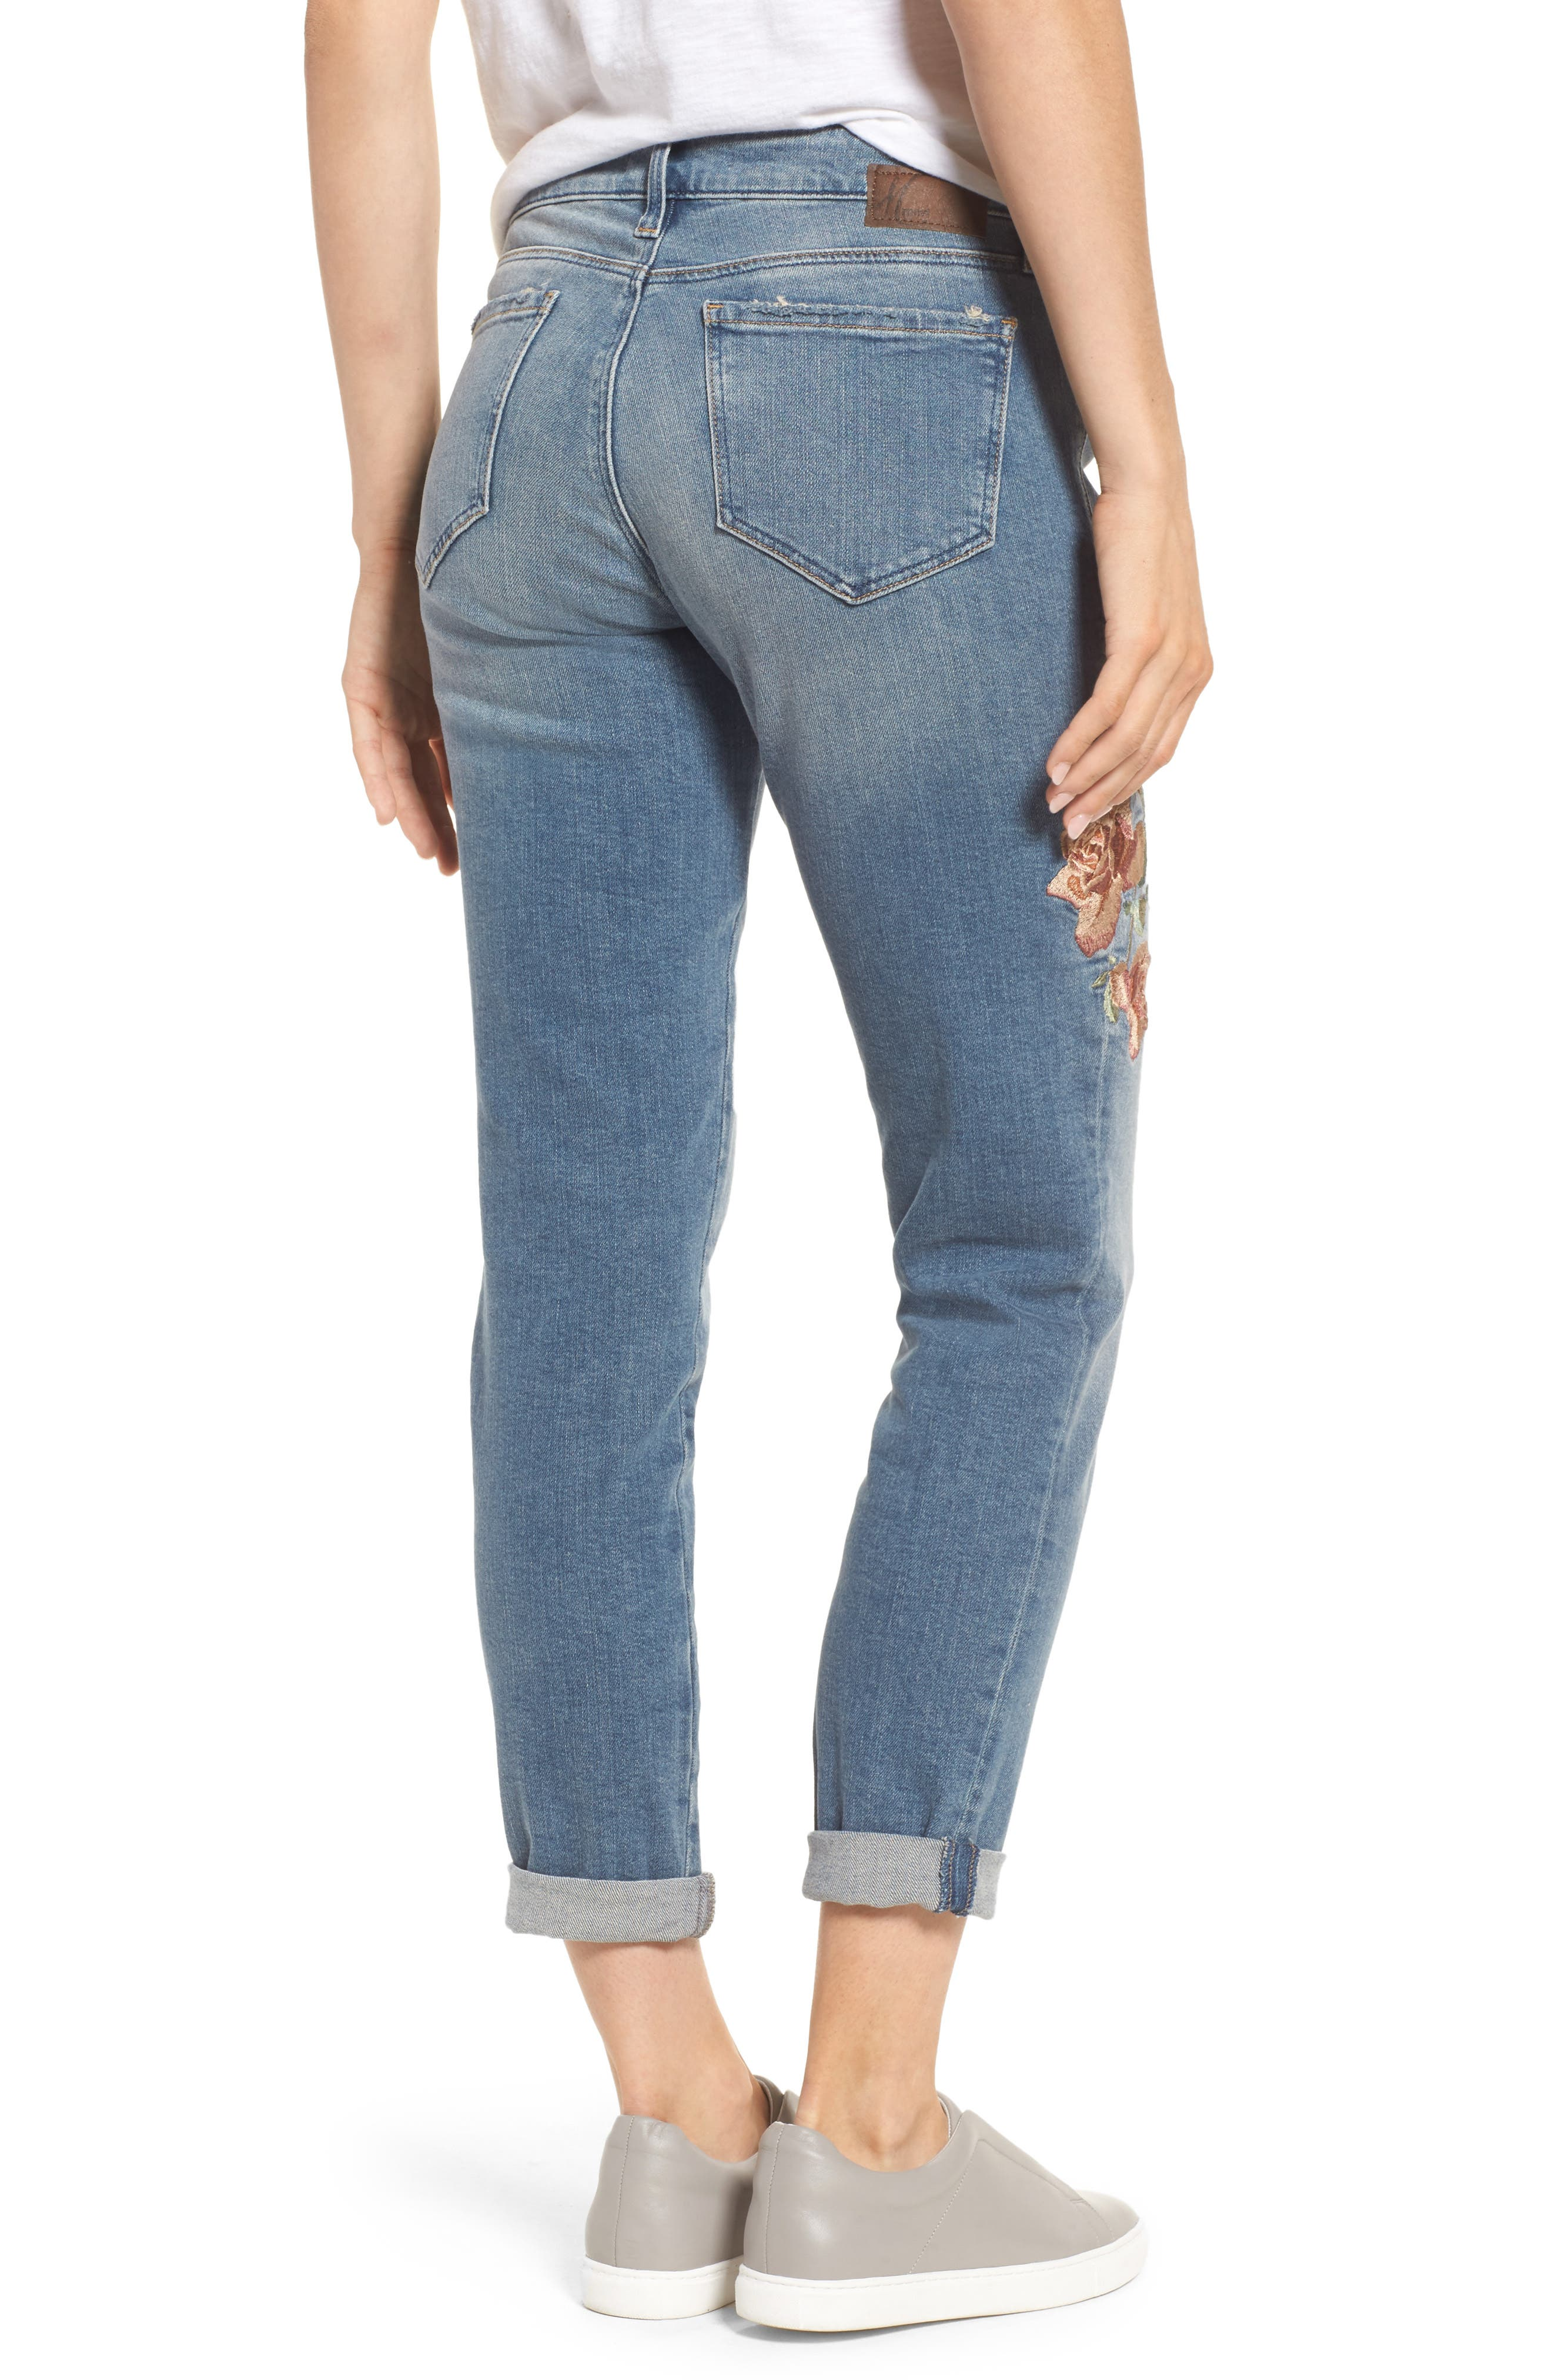 Ada Embroidered Boyfriend Jeans,                             Alternate thumbnail 2, color,                             420